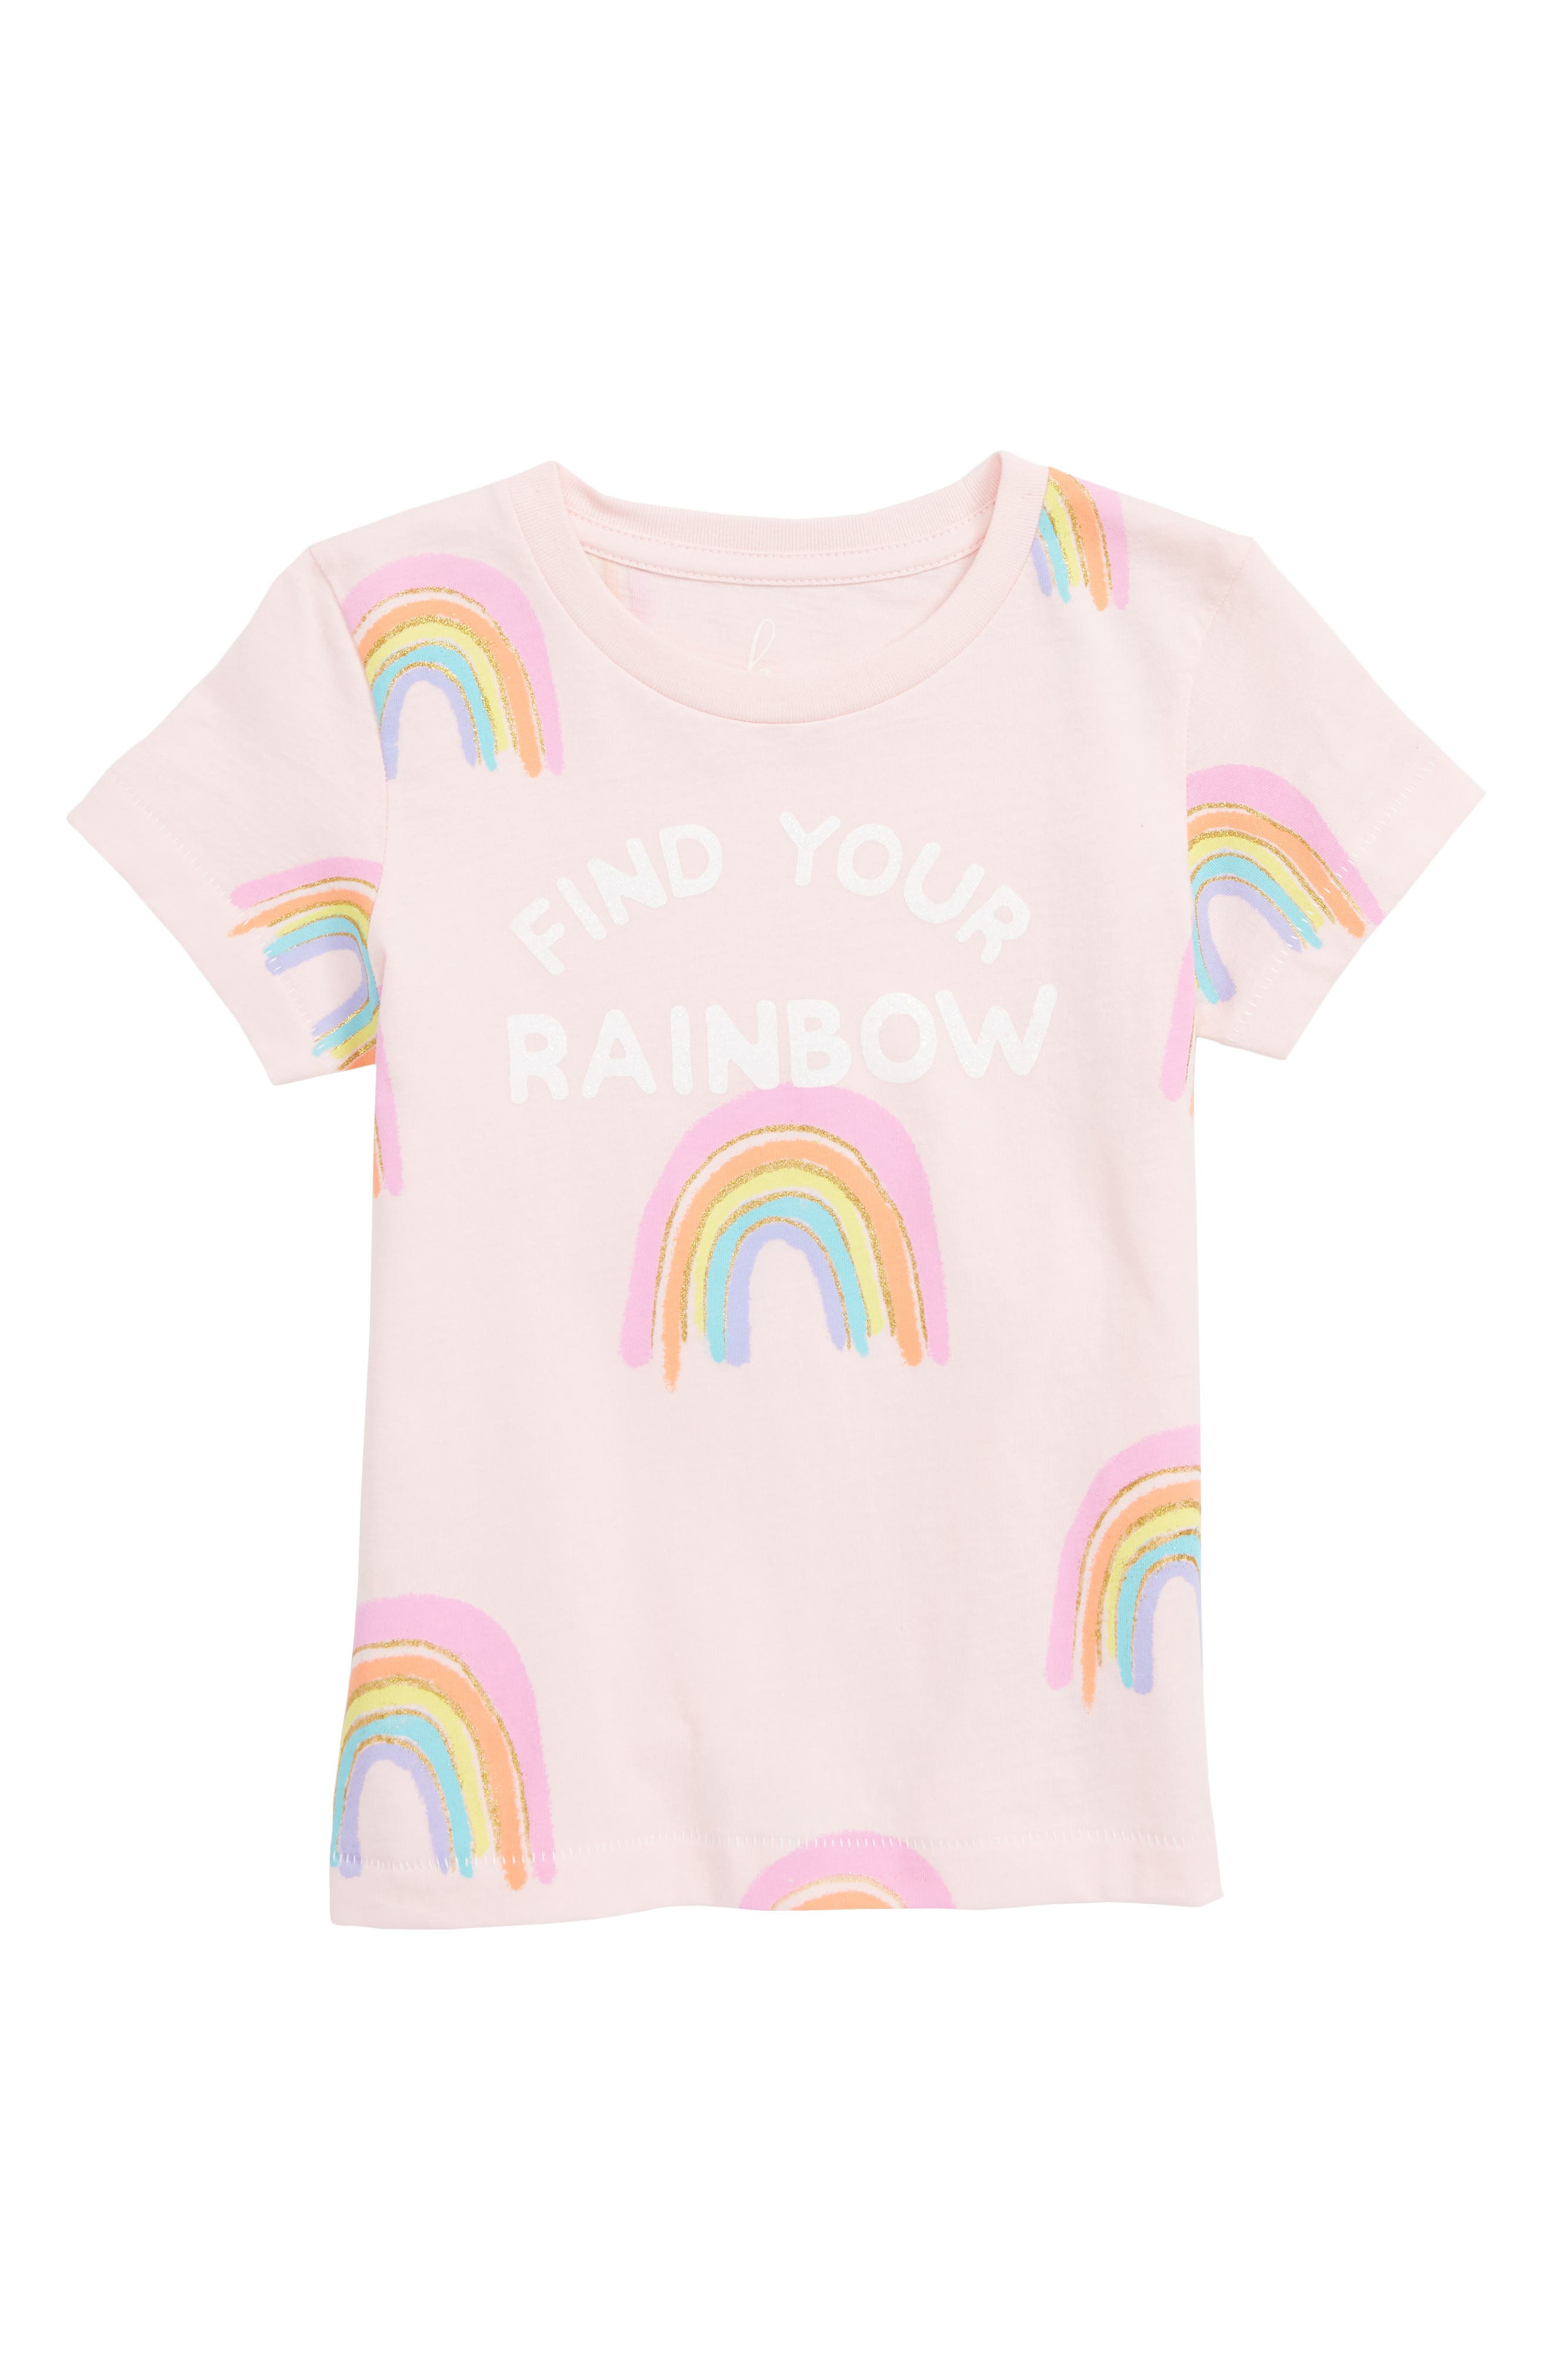 PEEK AREN'T YOU CURIOUS,                             Peek Find Your Rainbow Graphic Tee,                             Main thumbnail 1, color,                             PINK